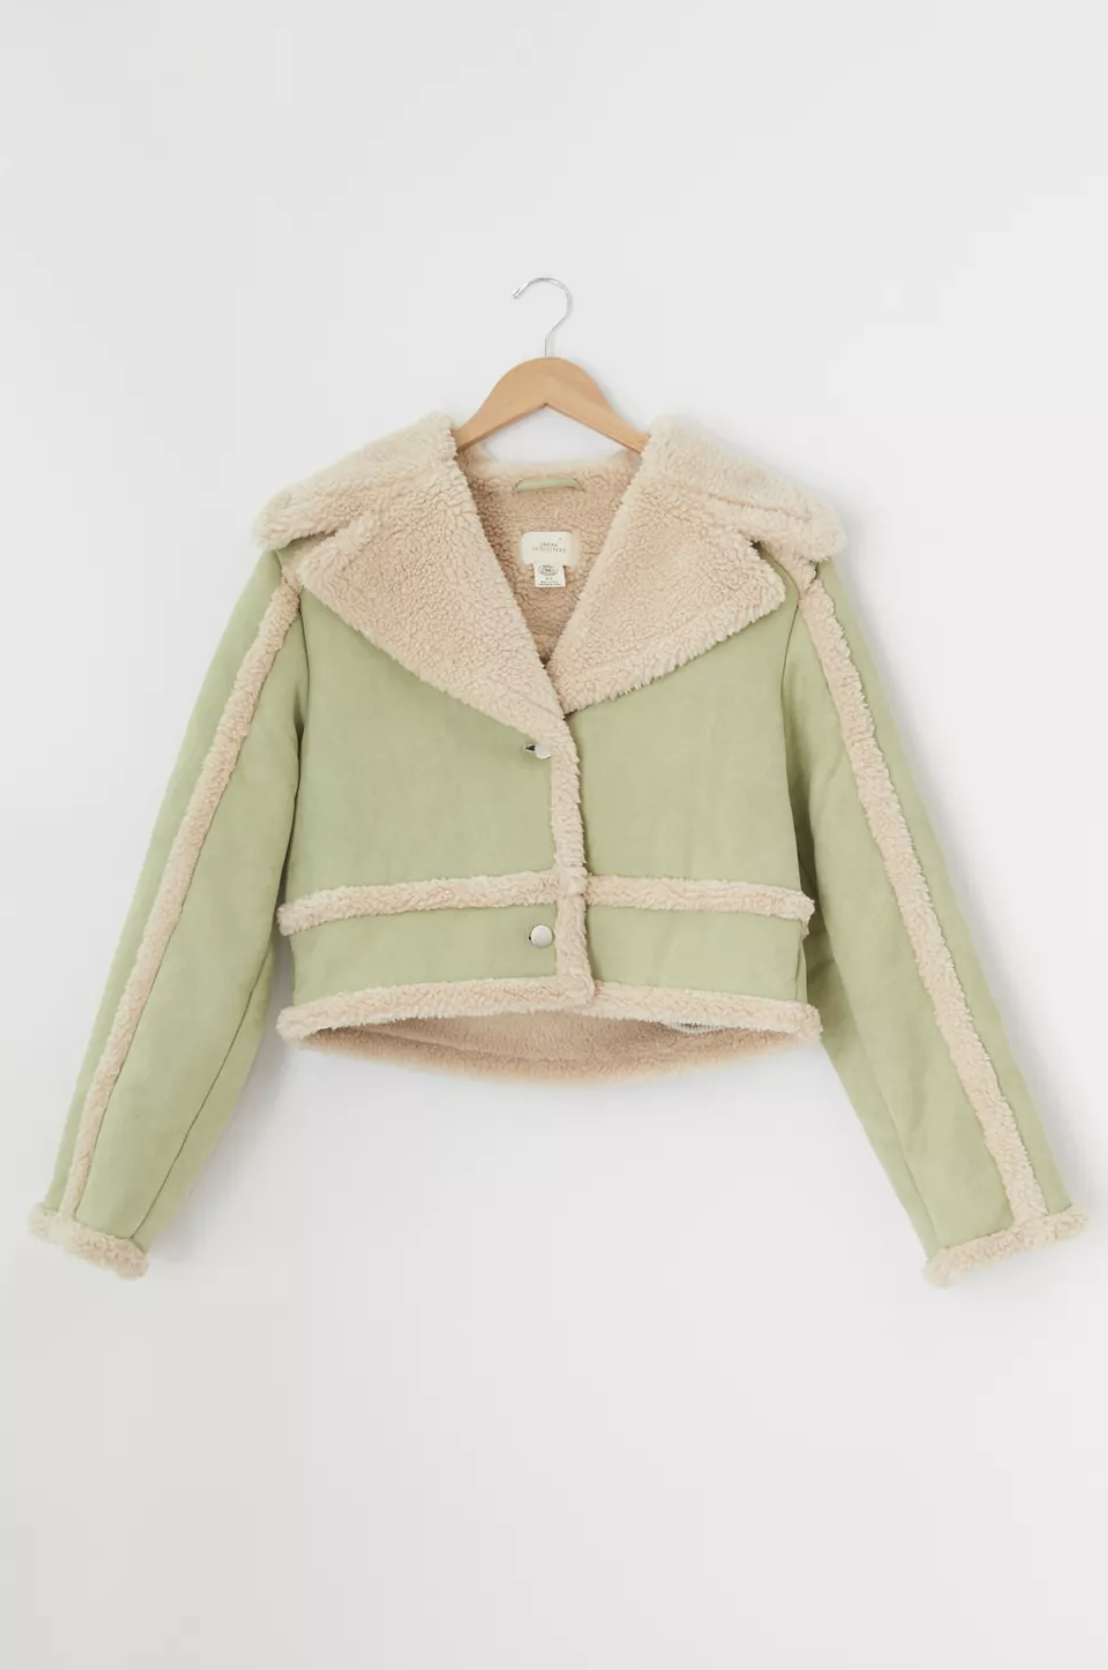 Urban Outfitters Chloe Faux Shearling Cropped Jacket